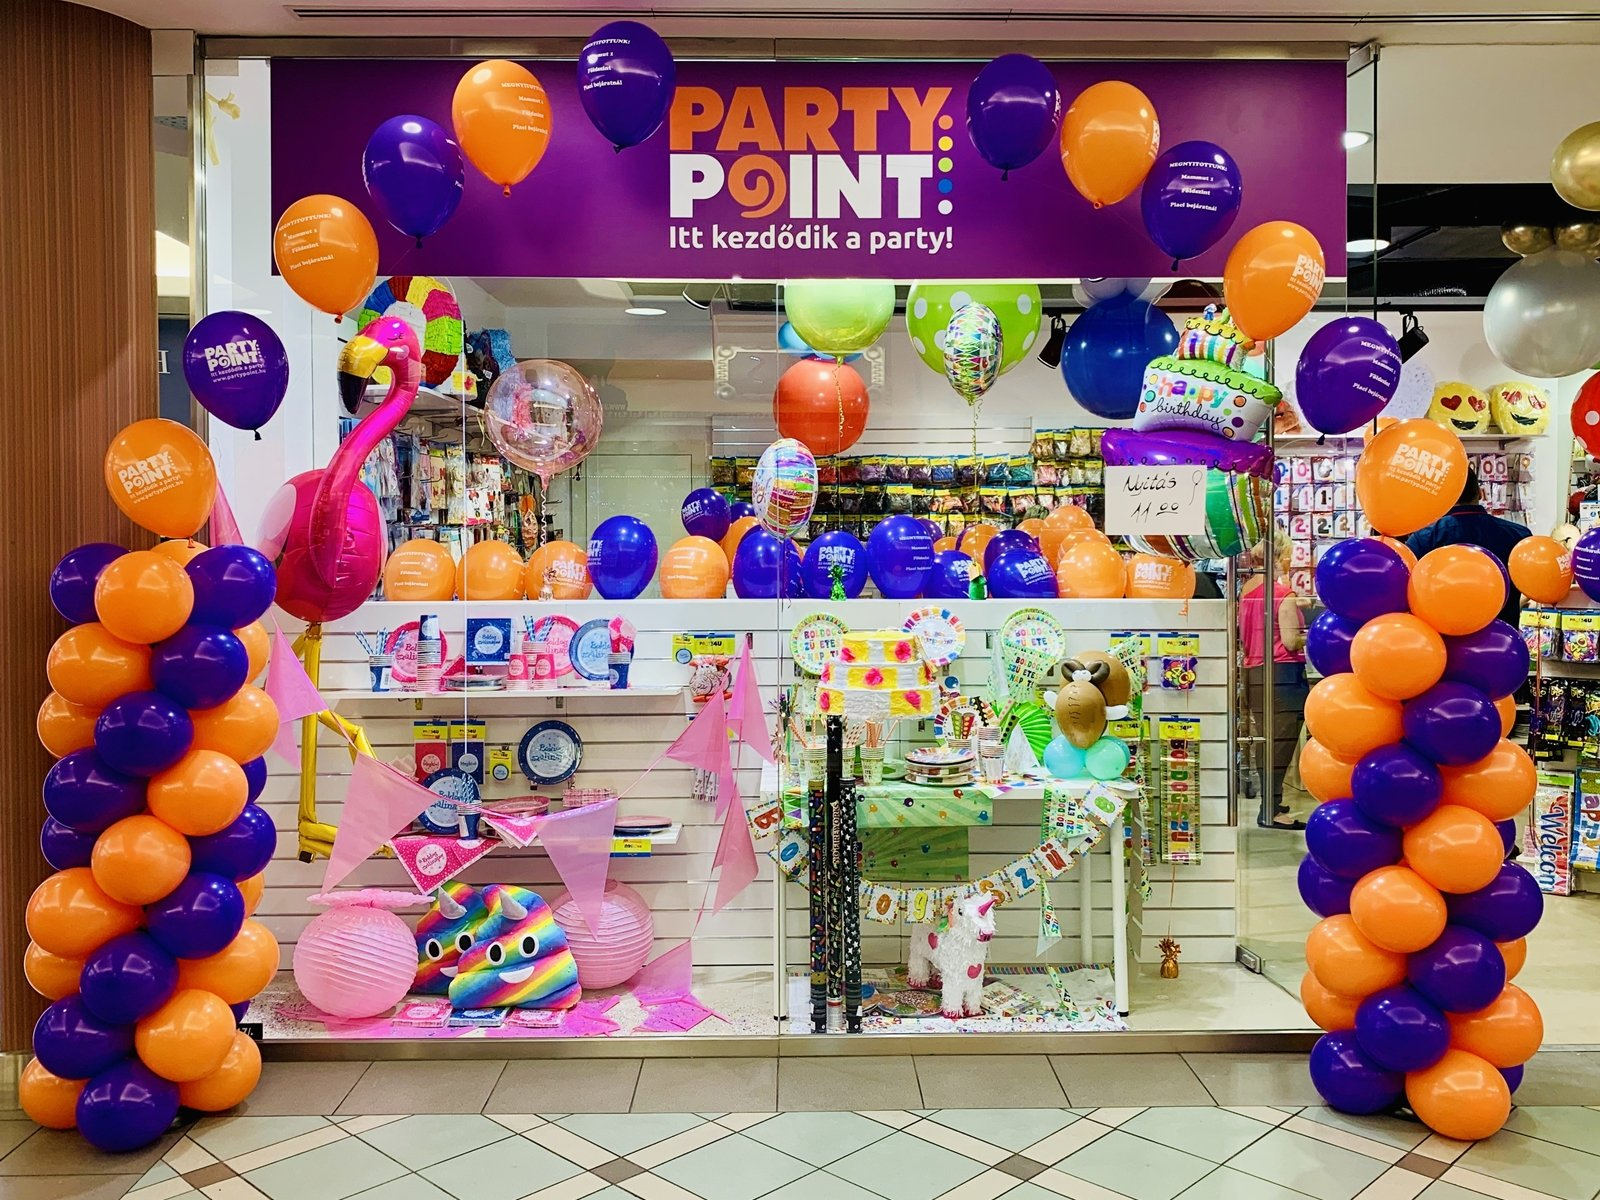 Party Point